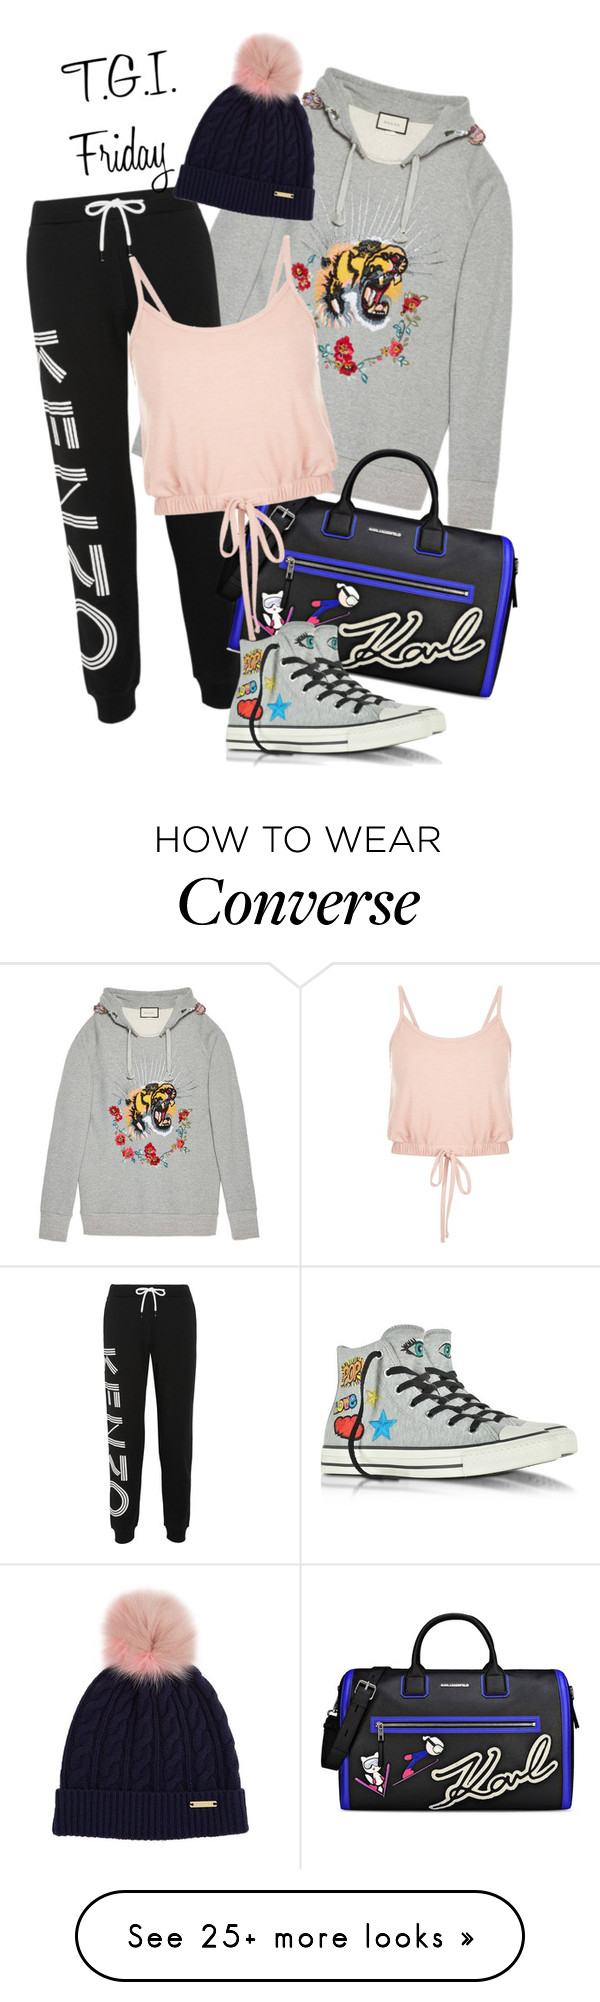 """Weekend!!!"" by velvy on Polyvore featuring Gucci, Kenzo, Karl Lagerfeld, Converse and Burberry"